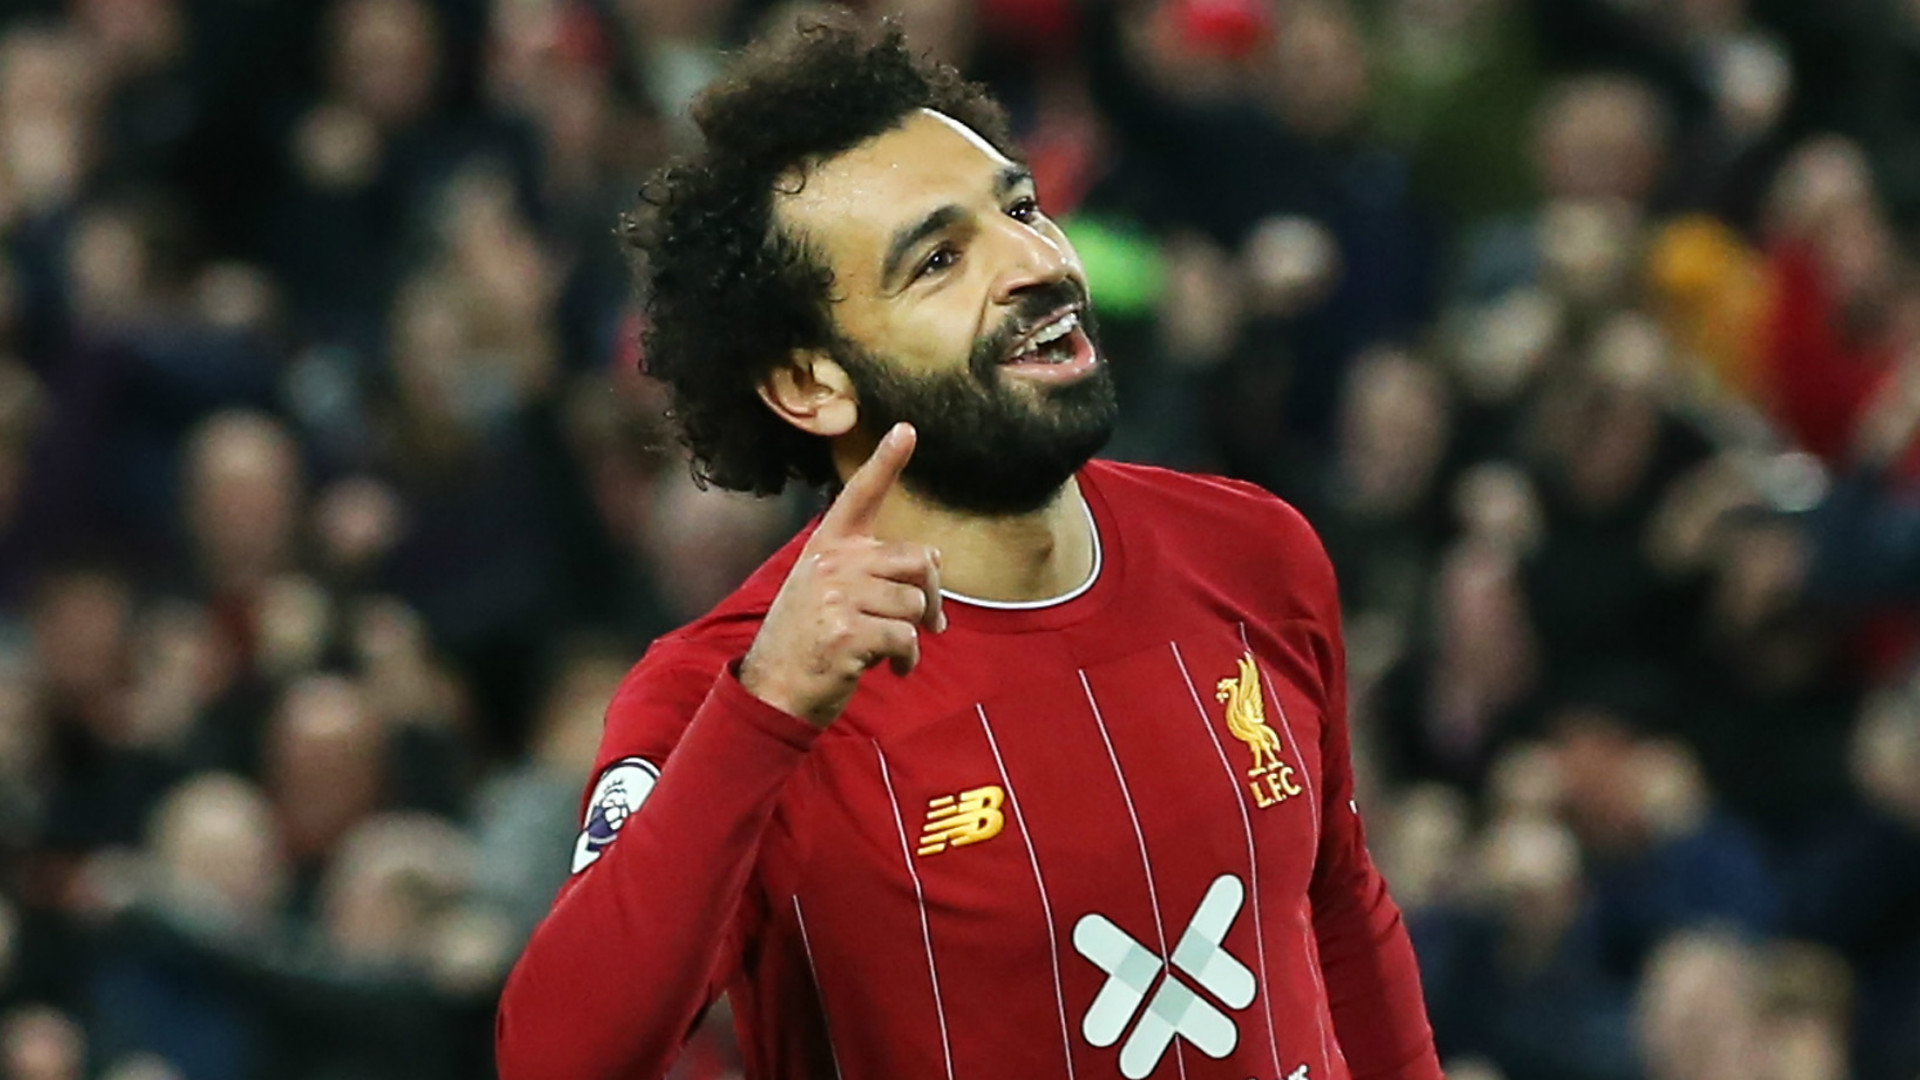 Liverpool's Salah continues fine run at Anfield with Manchester City goal